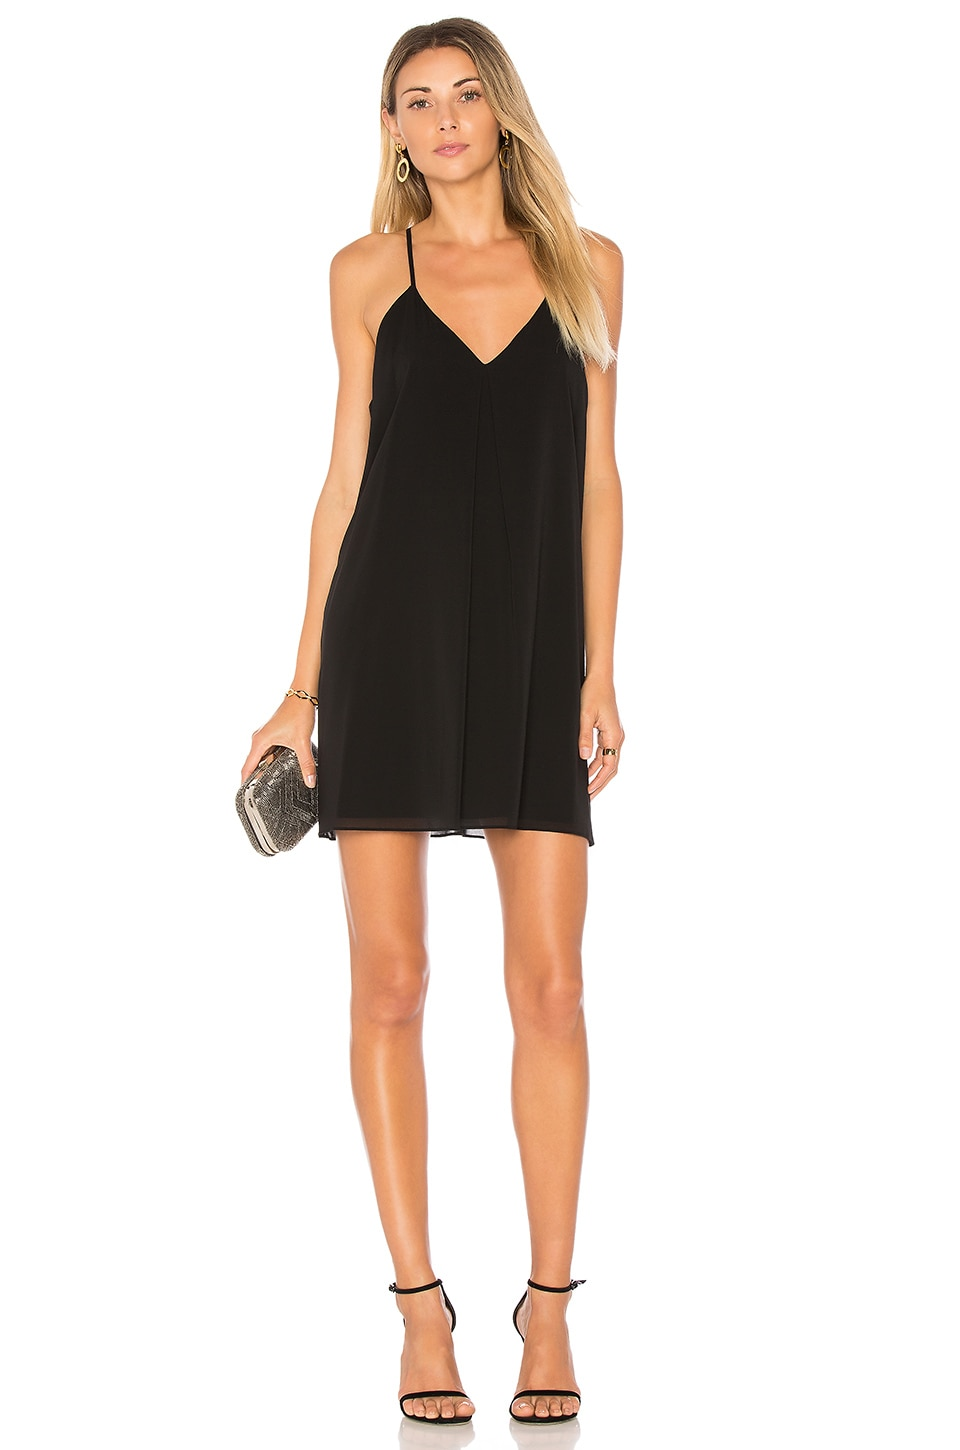 Alice + Olivia Fierra Dress in Black